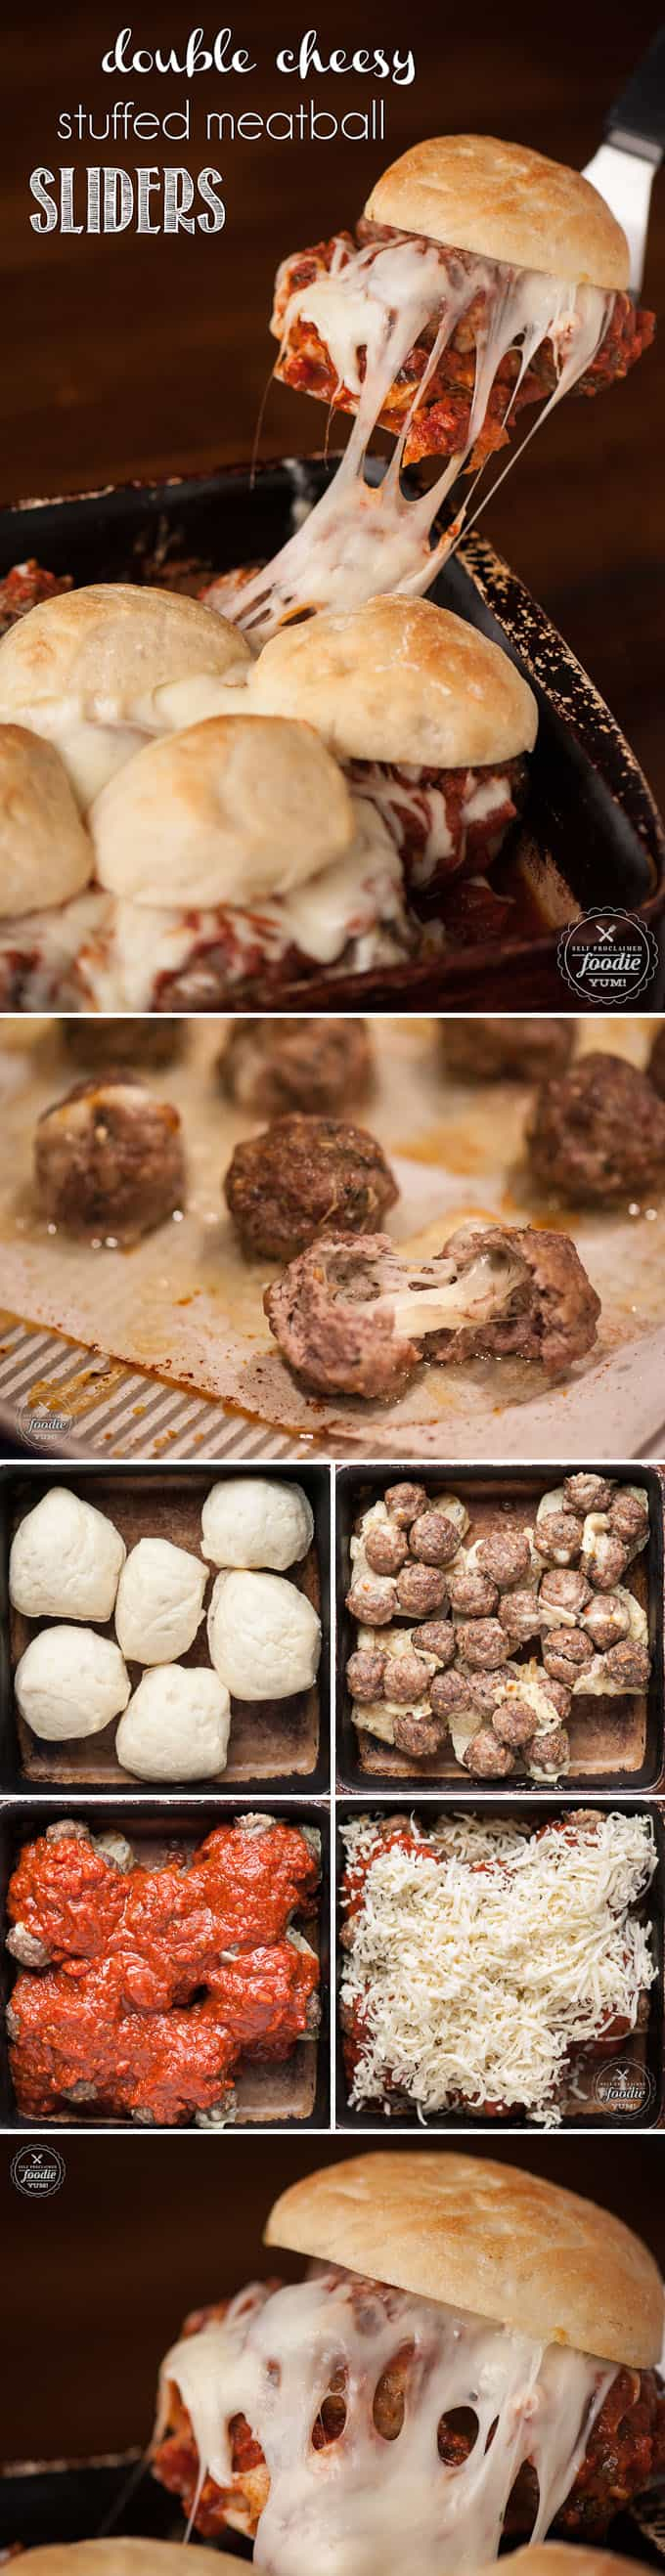 Celebrate the magic of mealtime with these easy-to-make Double Cheesy Stuffed Meatball Sliders that the entire family will love.